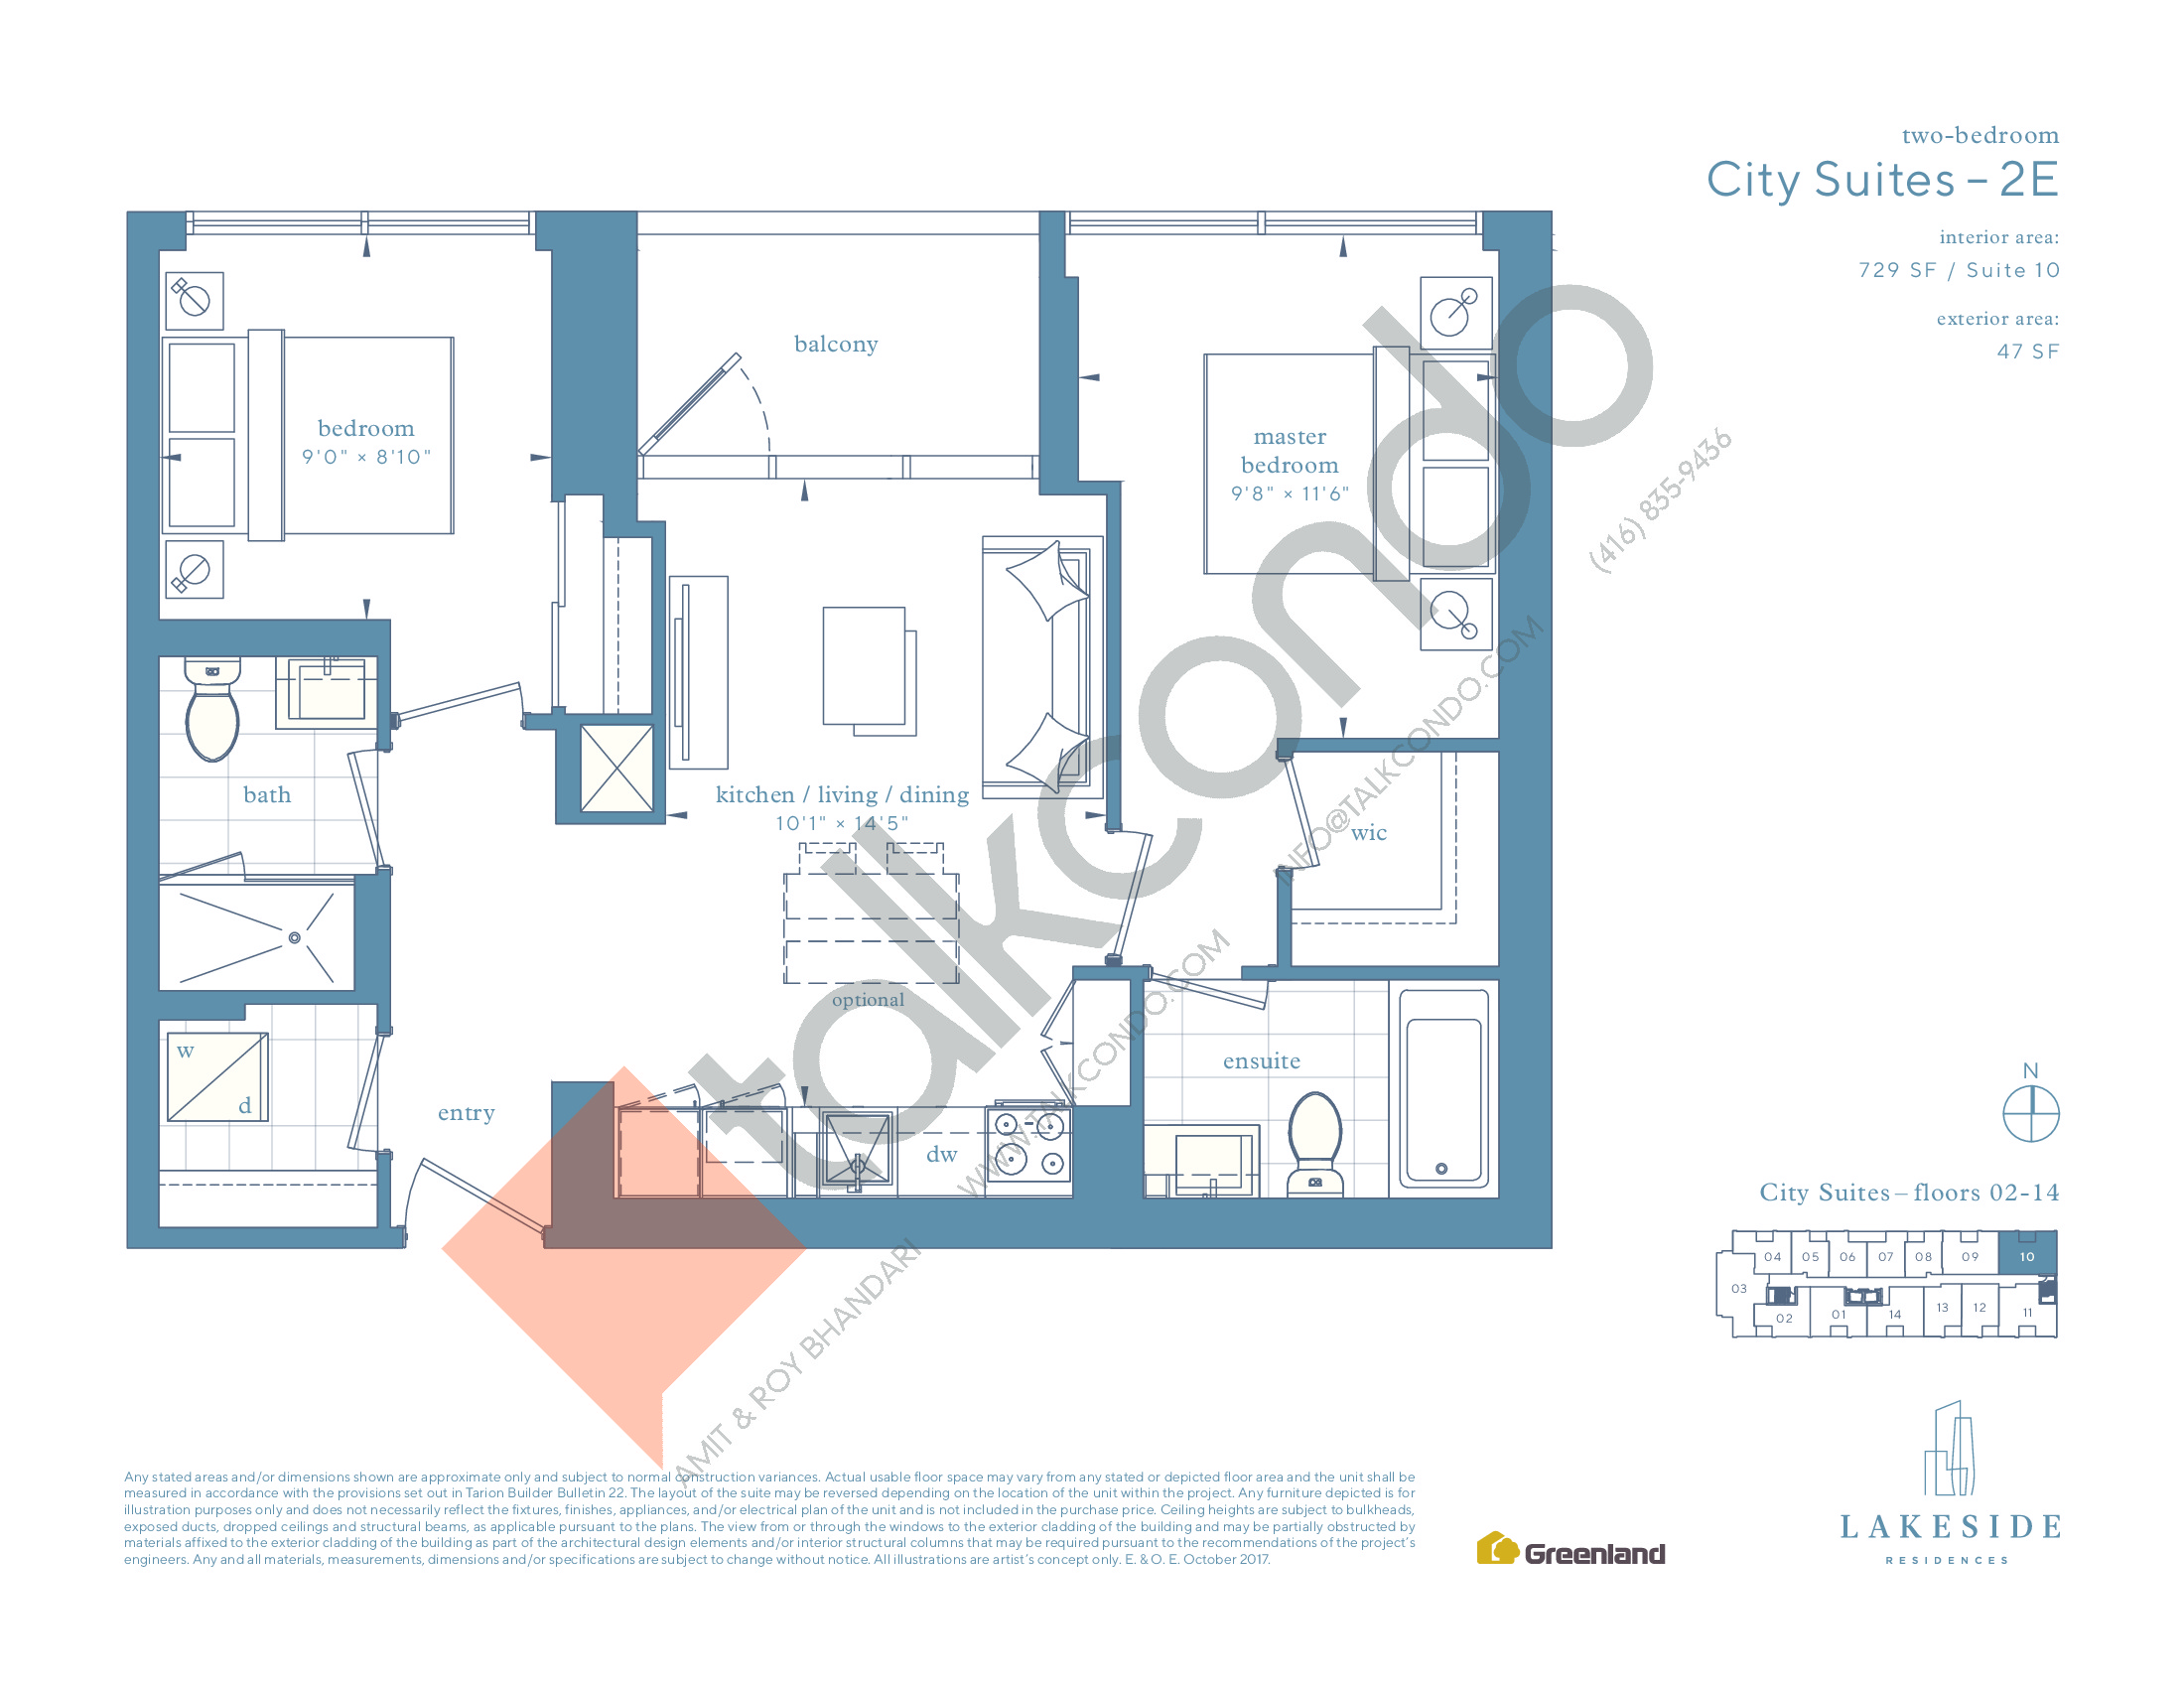 City Suites - 2E Floor Plan at Lakeside Residences - 729 sq.ft